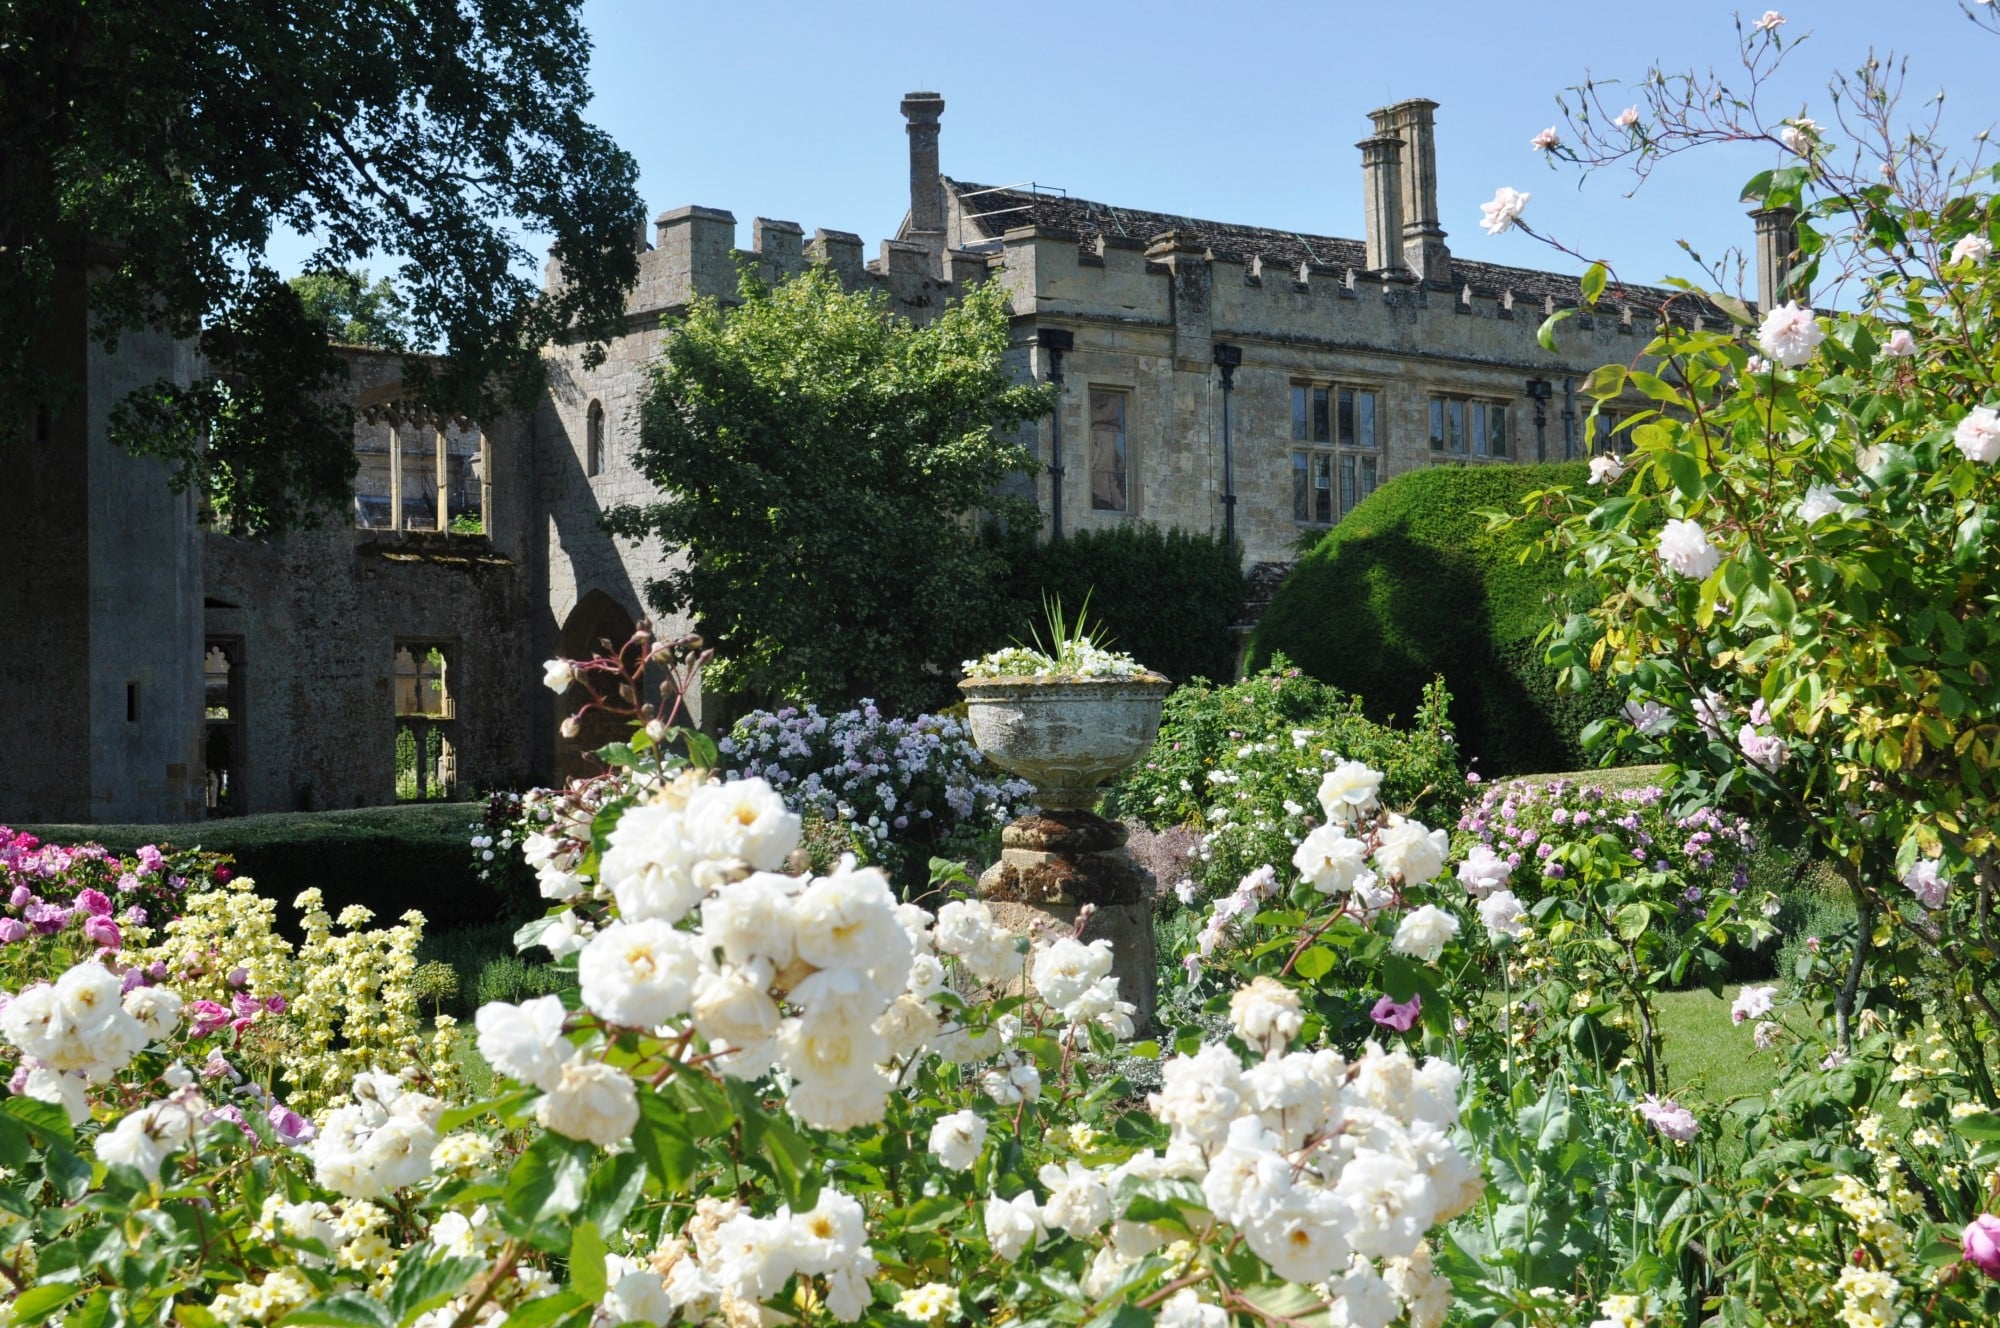 Sudeley-Castle-Queens-Roses-Garden.jpg